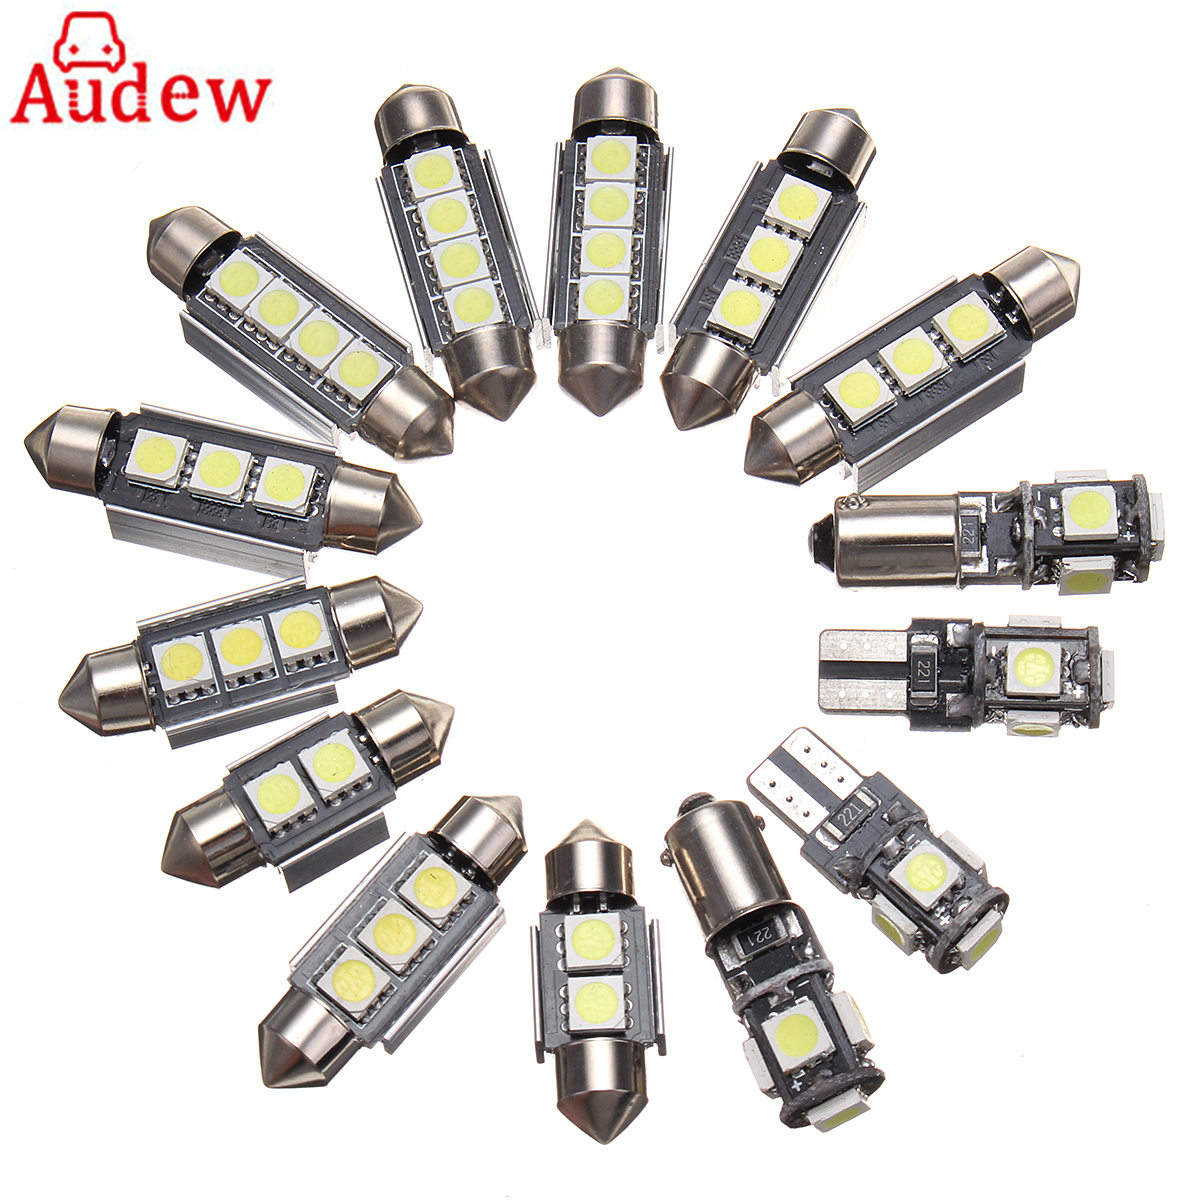 for Volkswagen Passat B6 06-10 14Pcs Car White Interior LED Light Lamp Kit With Tool for volkswagen passat b6 b7 b8 led interior boot trunk luggage compartment light bulb